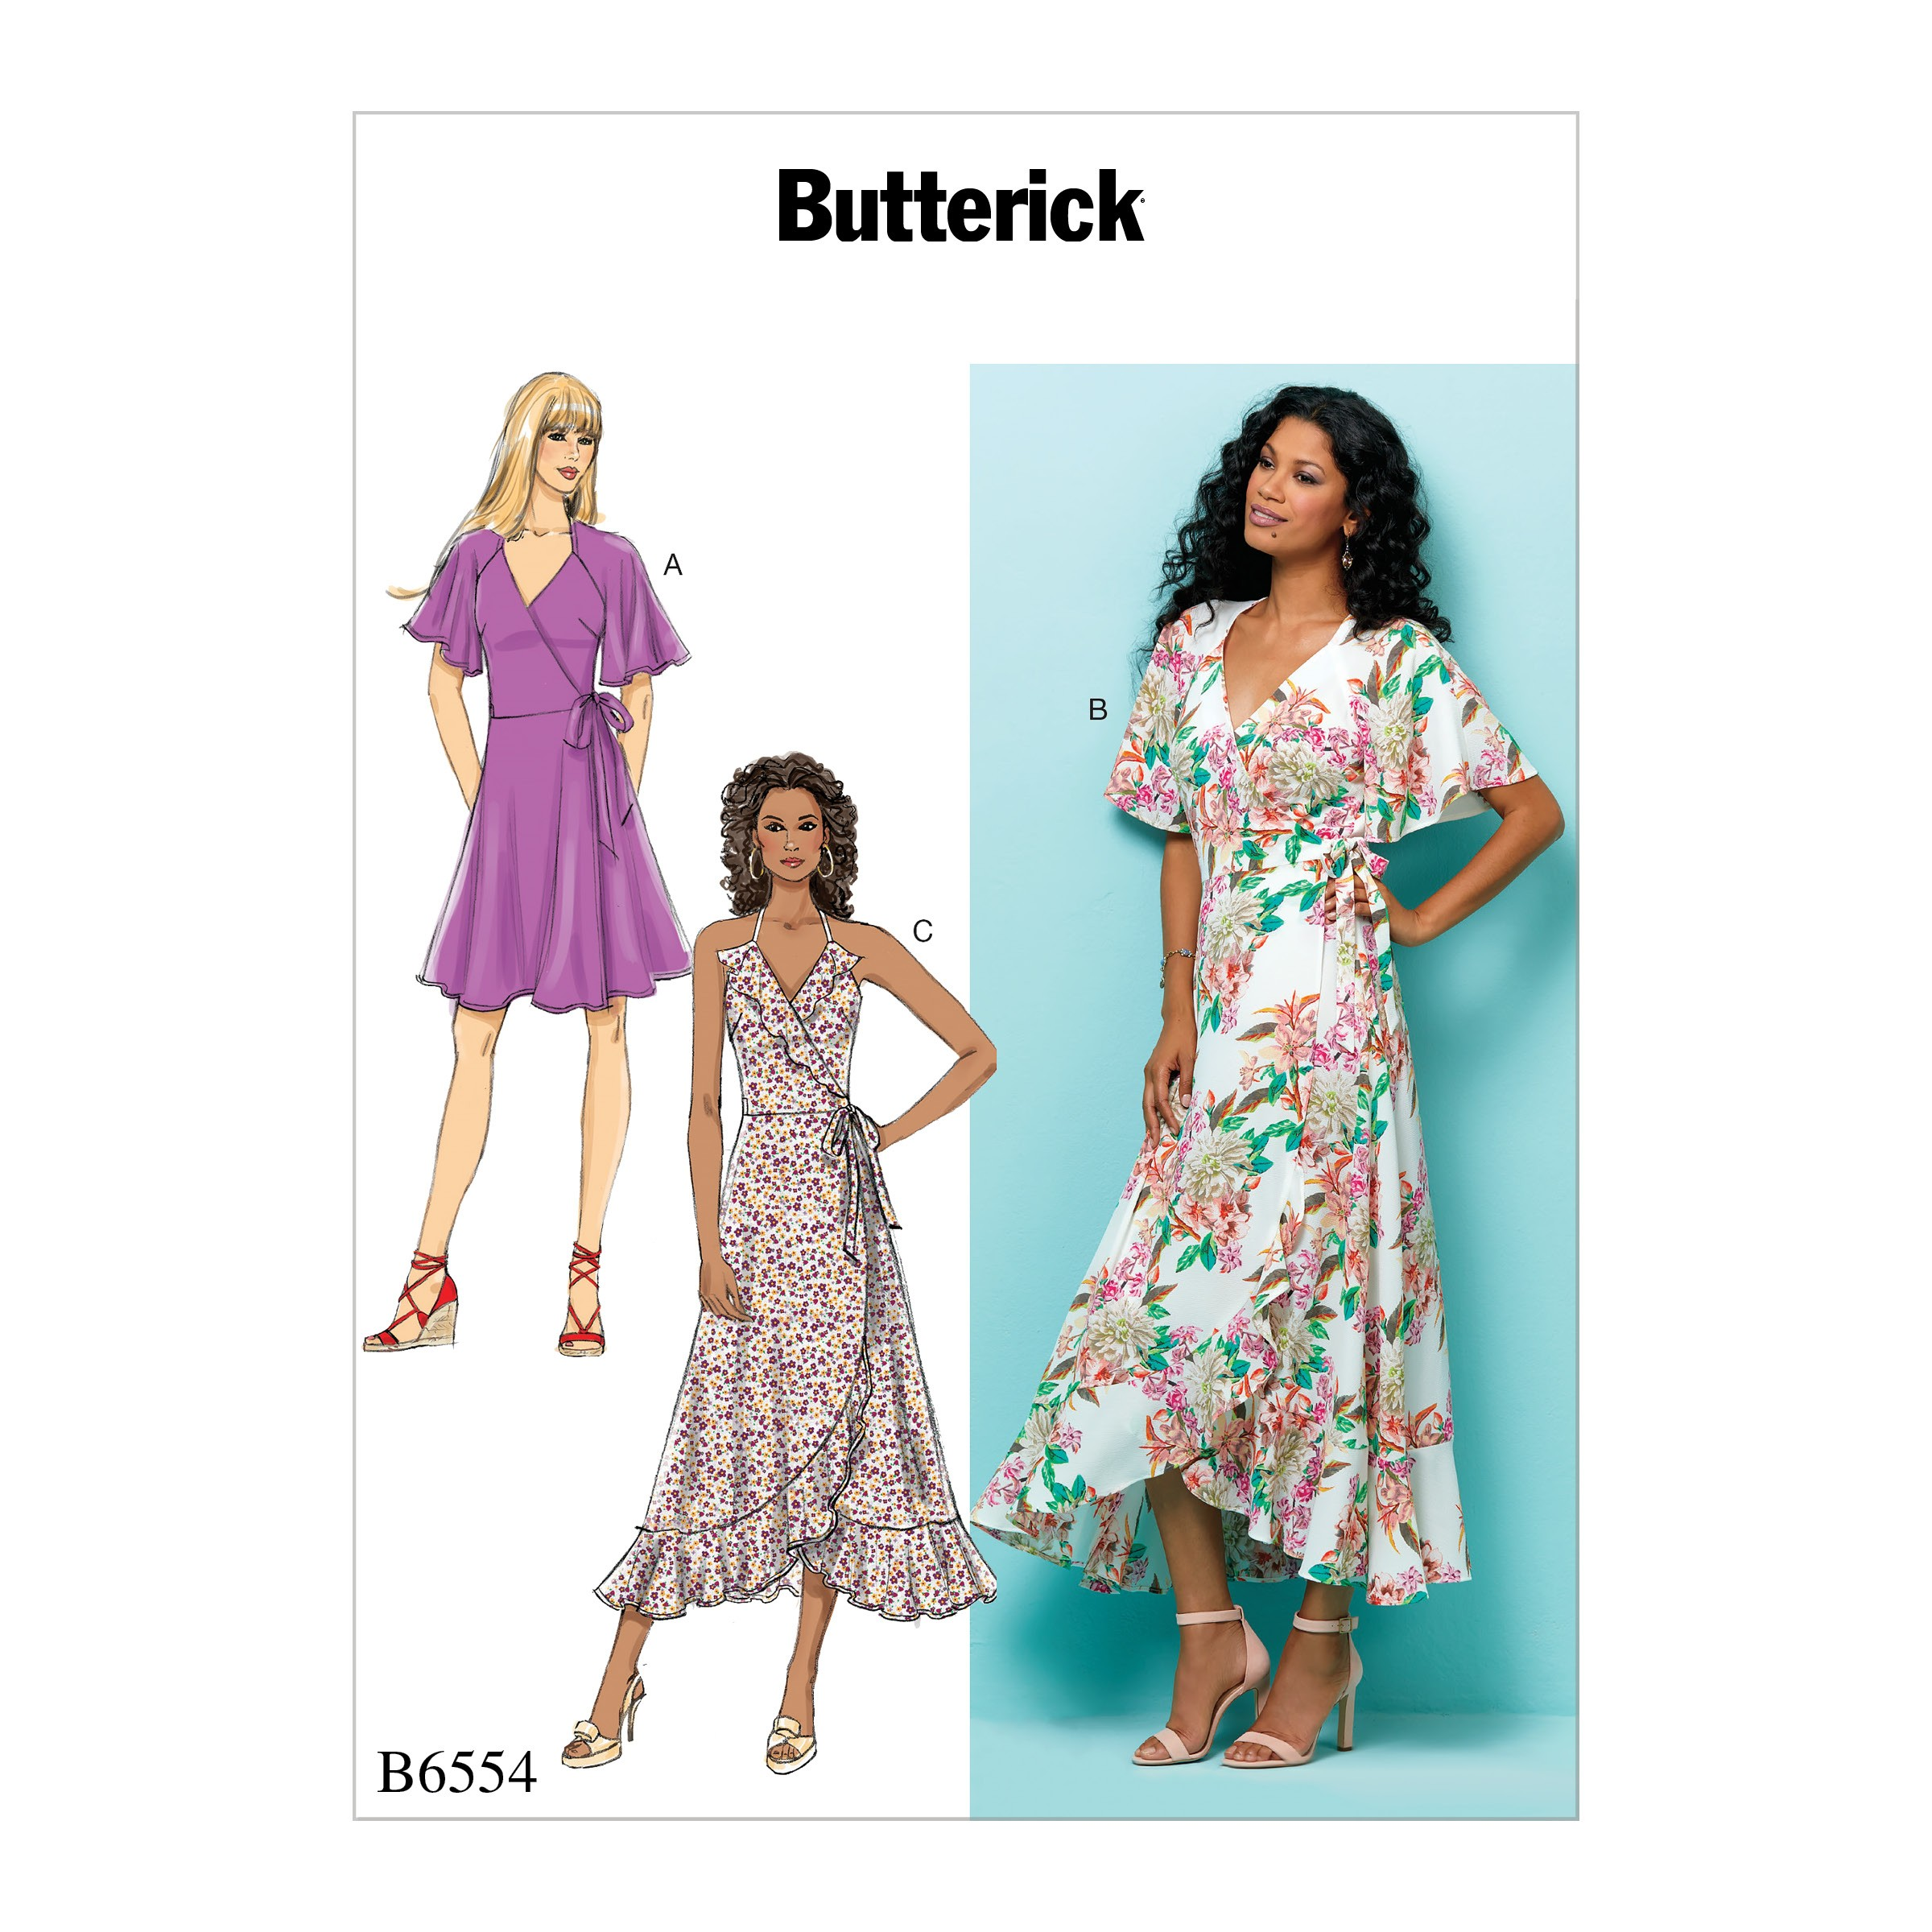 Butterick Sewing Pattern 6554 Misses' Wrap Dress with Flutter Sleeve and Flounces